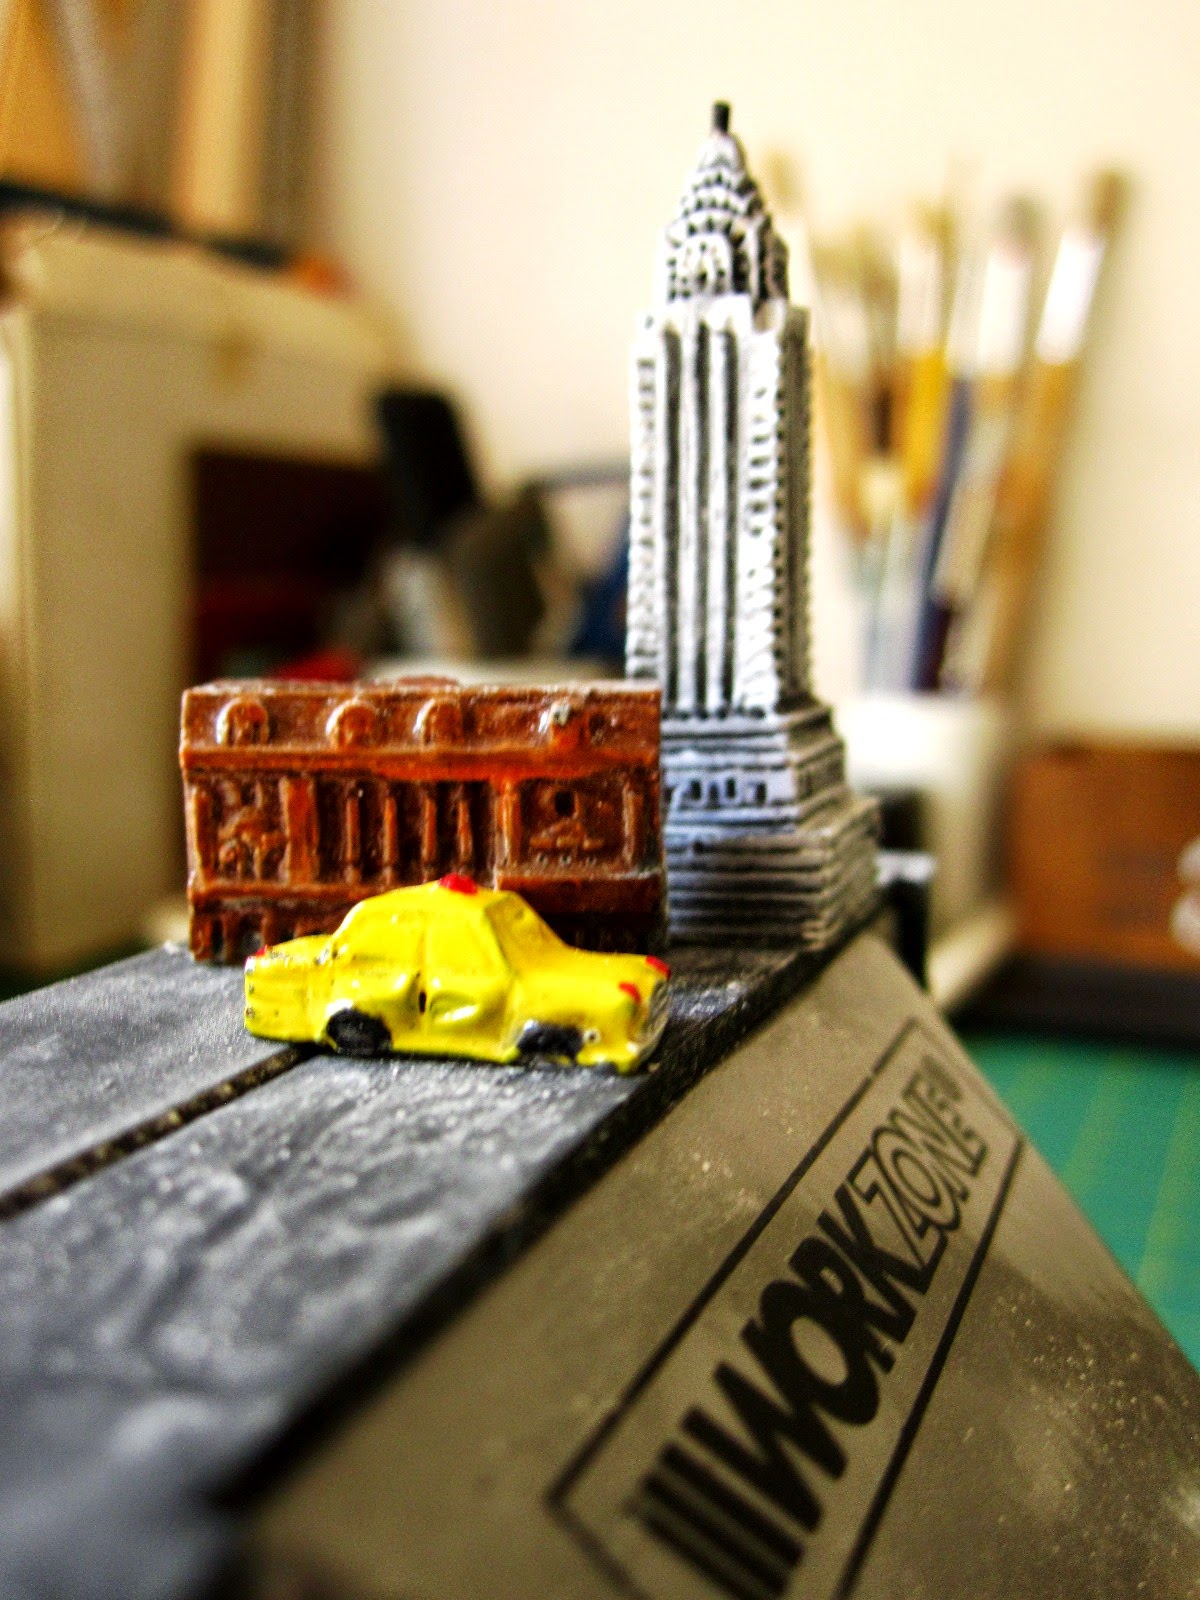 Tiny models of the Chrysler Building, the New York Stock Exchange and a New York yellow cab on top of a table vice.